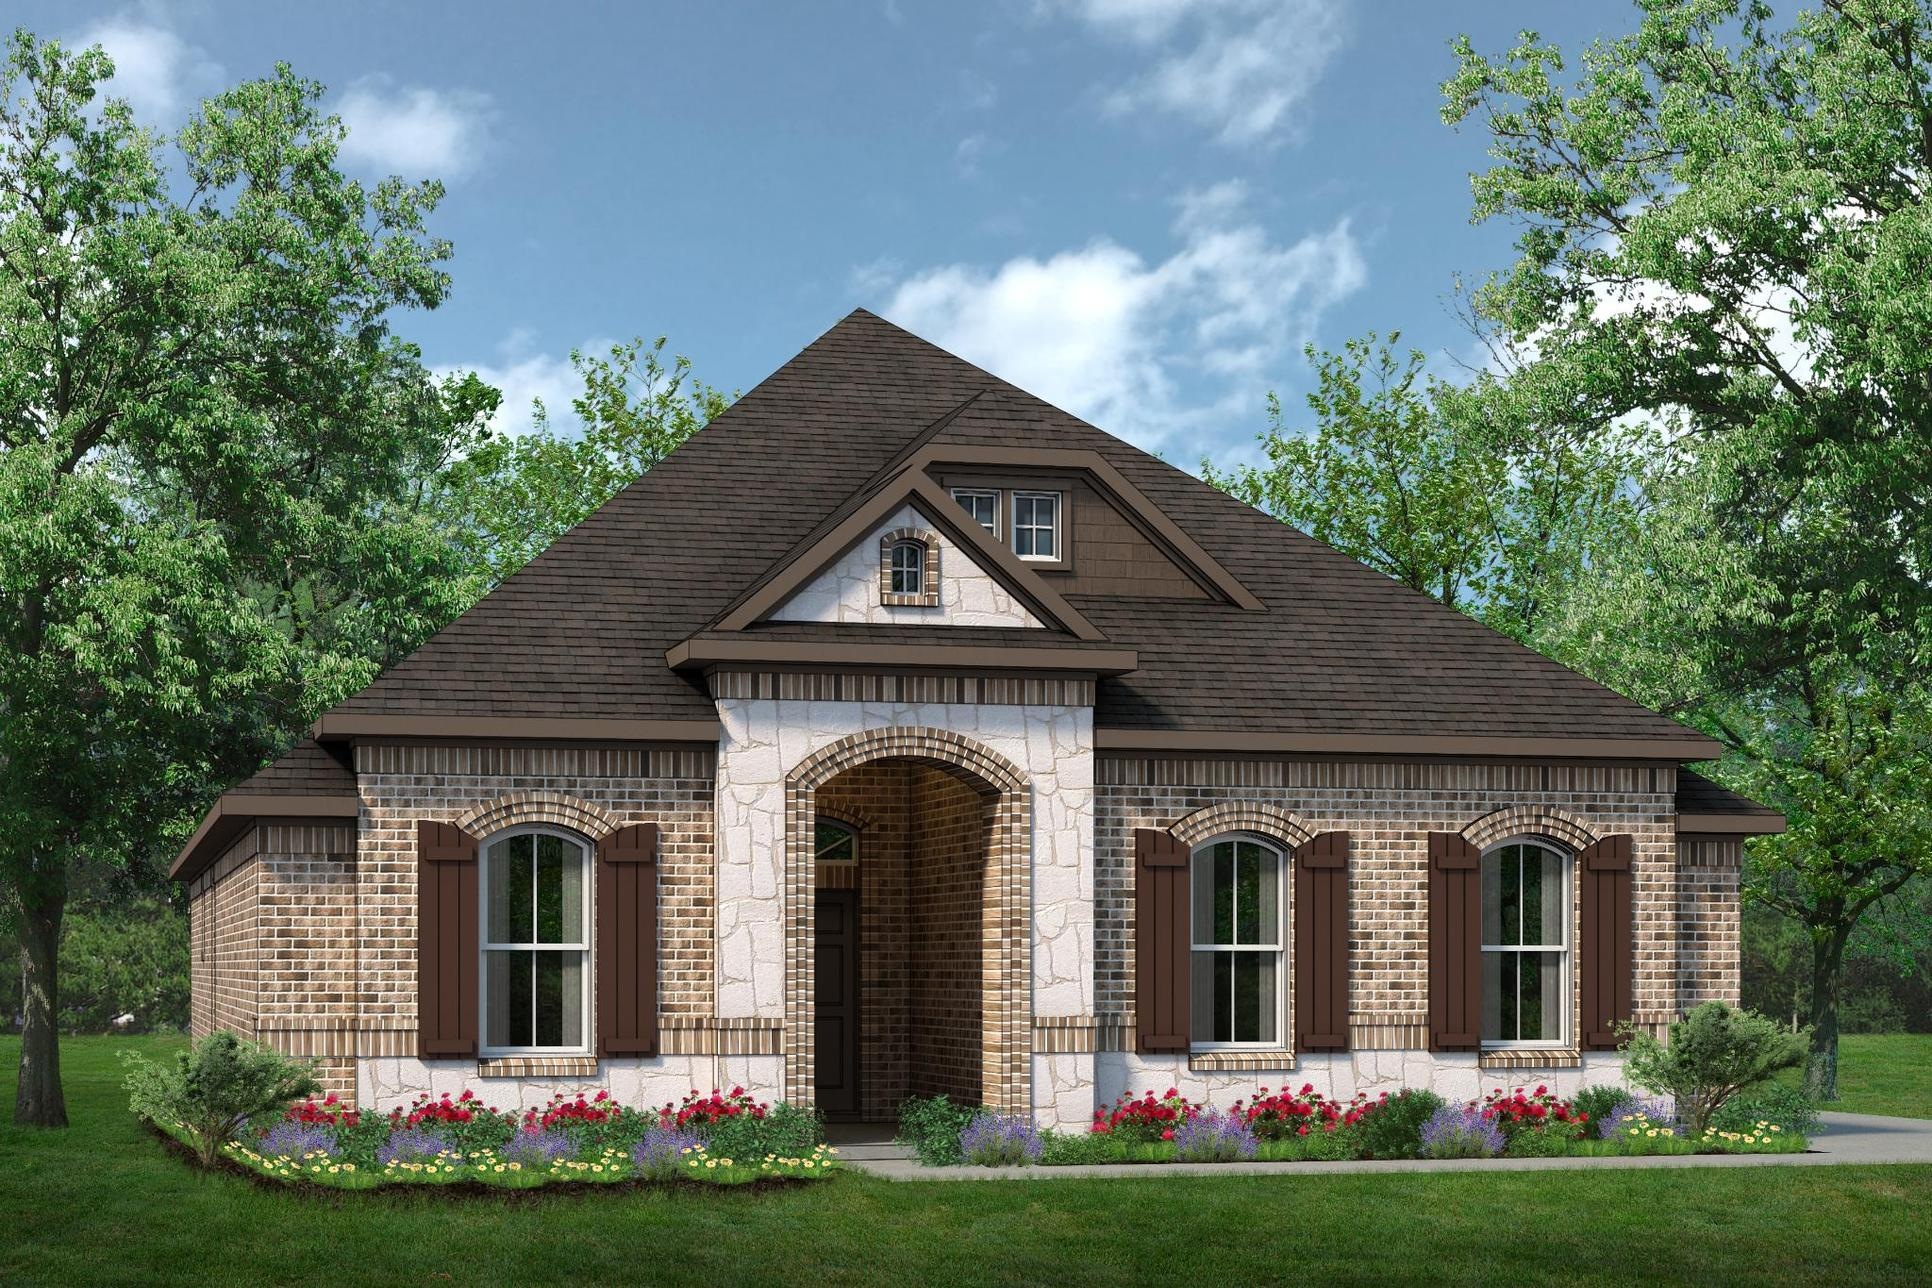 Exterior:2154 A with Stone